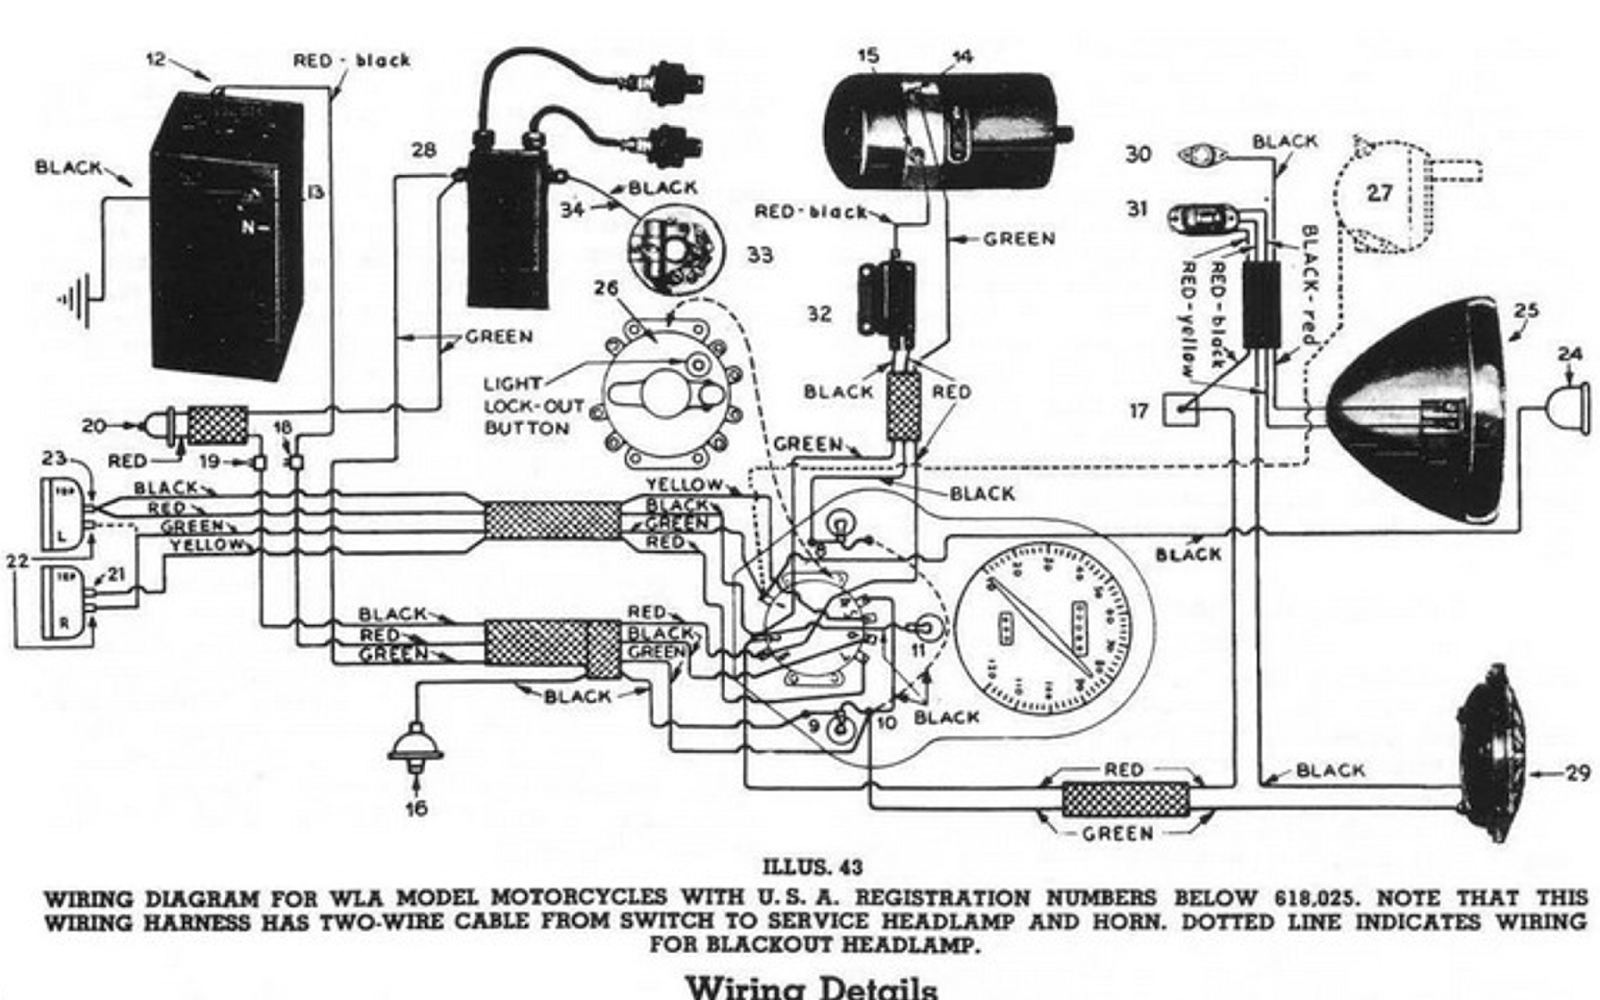 1941 harley davidson wl restoration re wiring the harley davidson wl harley davidson softail wiring diagram harley switch diagram [ 1600 x 1000 Pixel ]